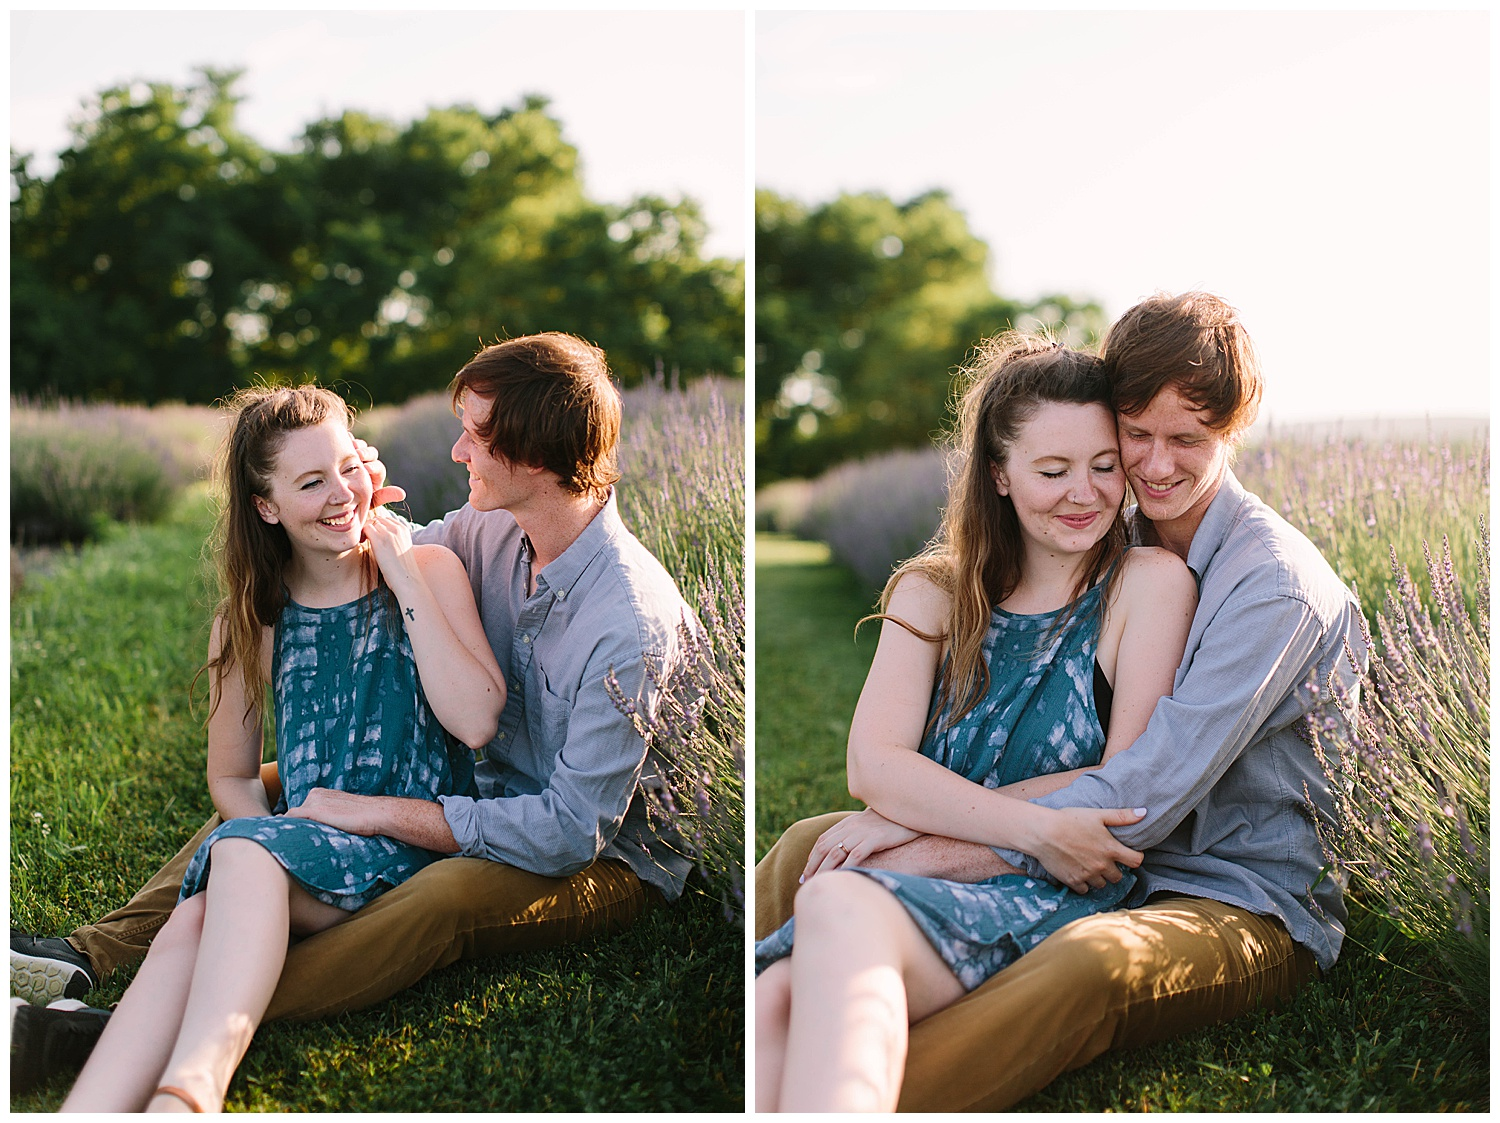 lavender.photoshoot.lavenderfarm.kentucky.engagement.anniversary.photography-29.jpg